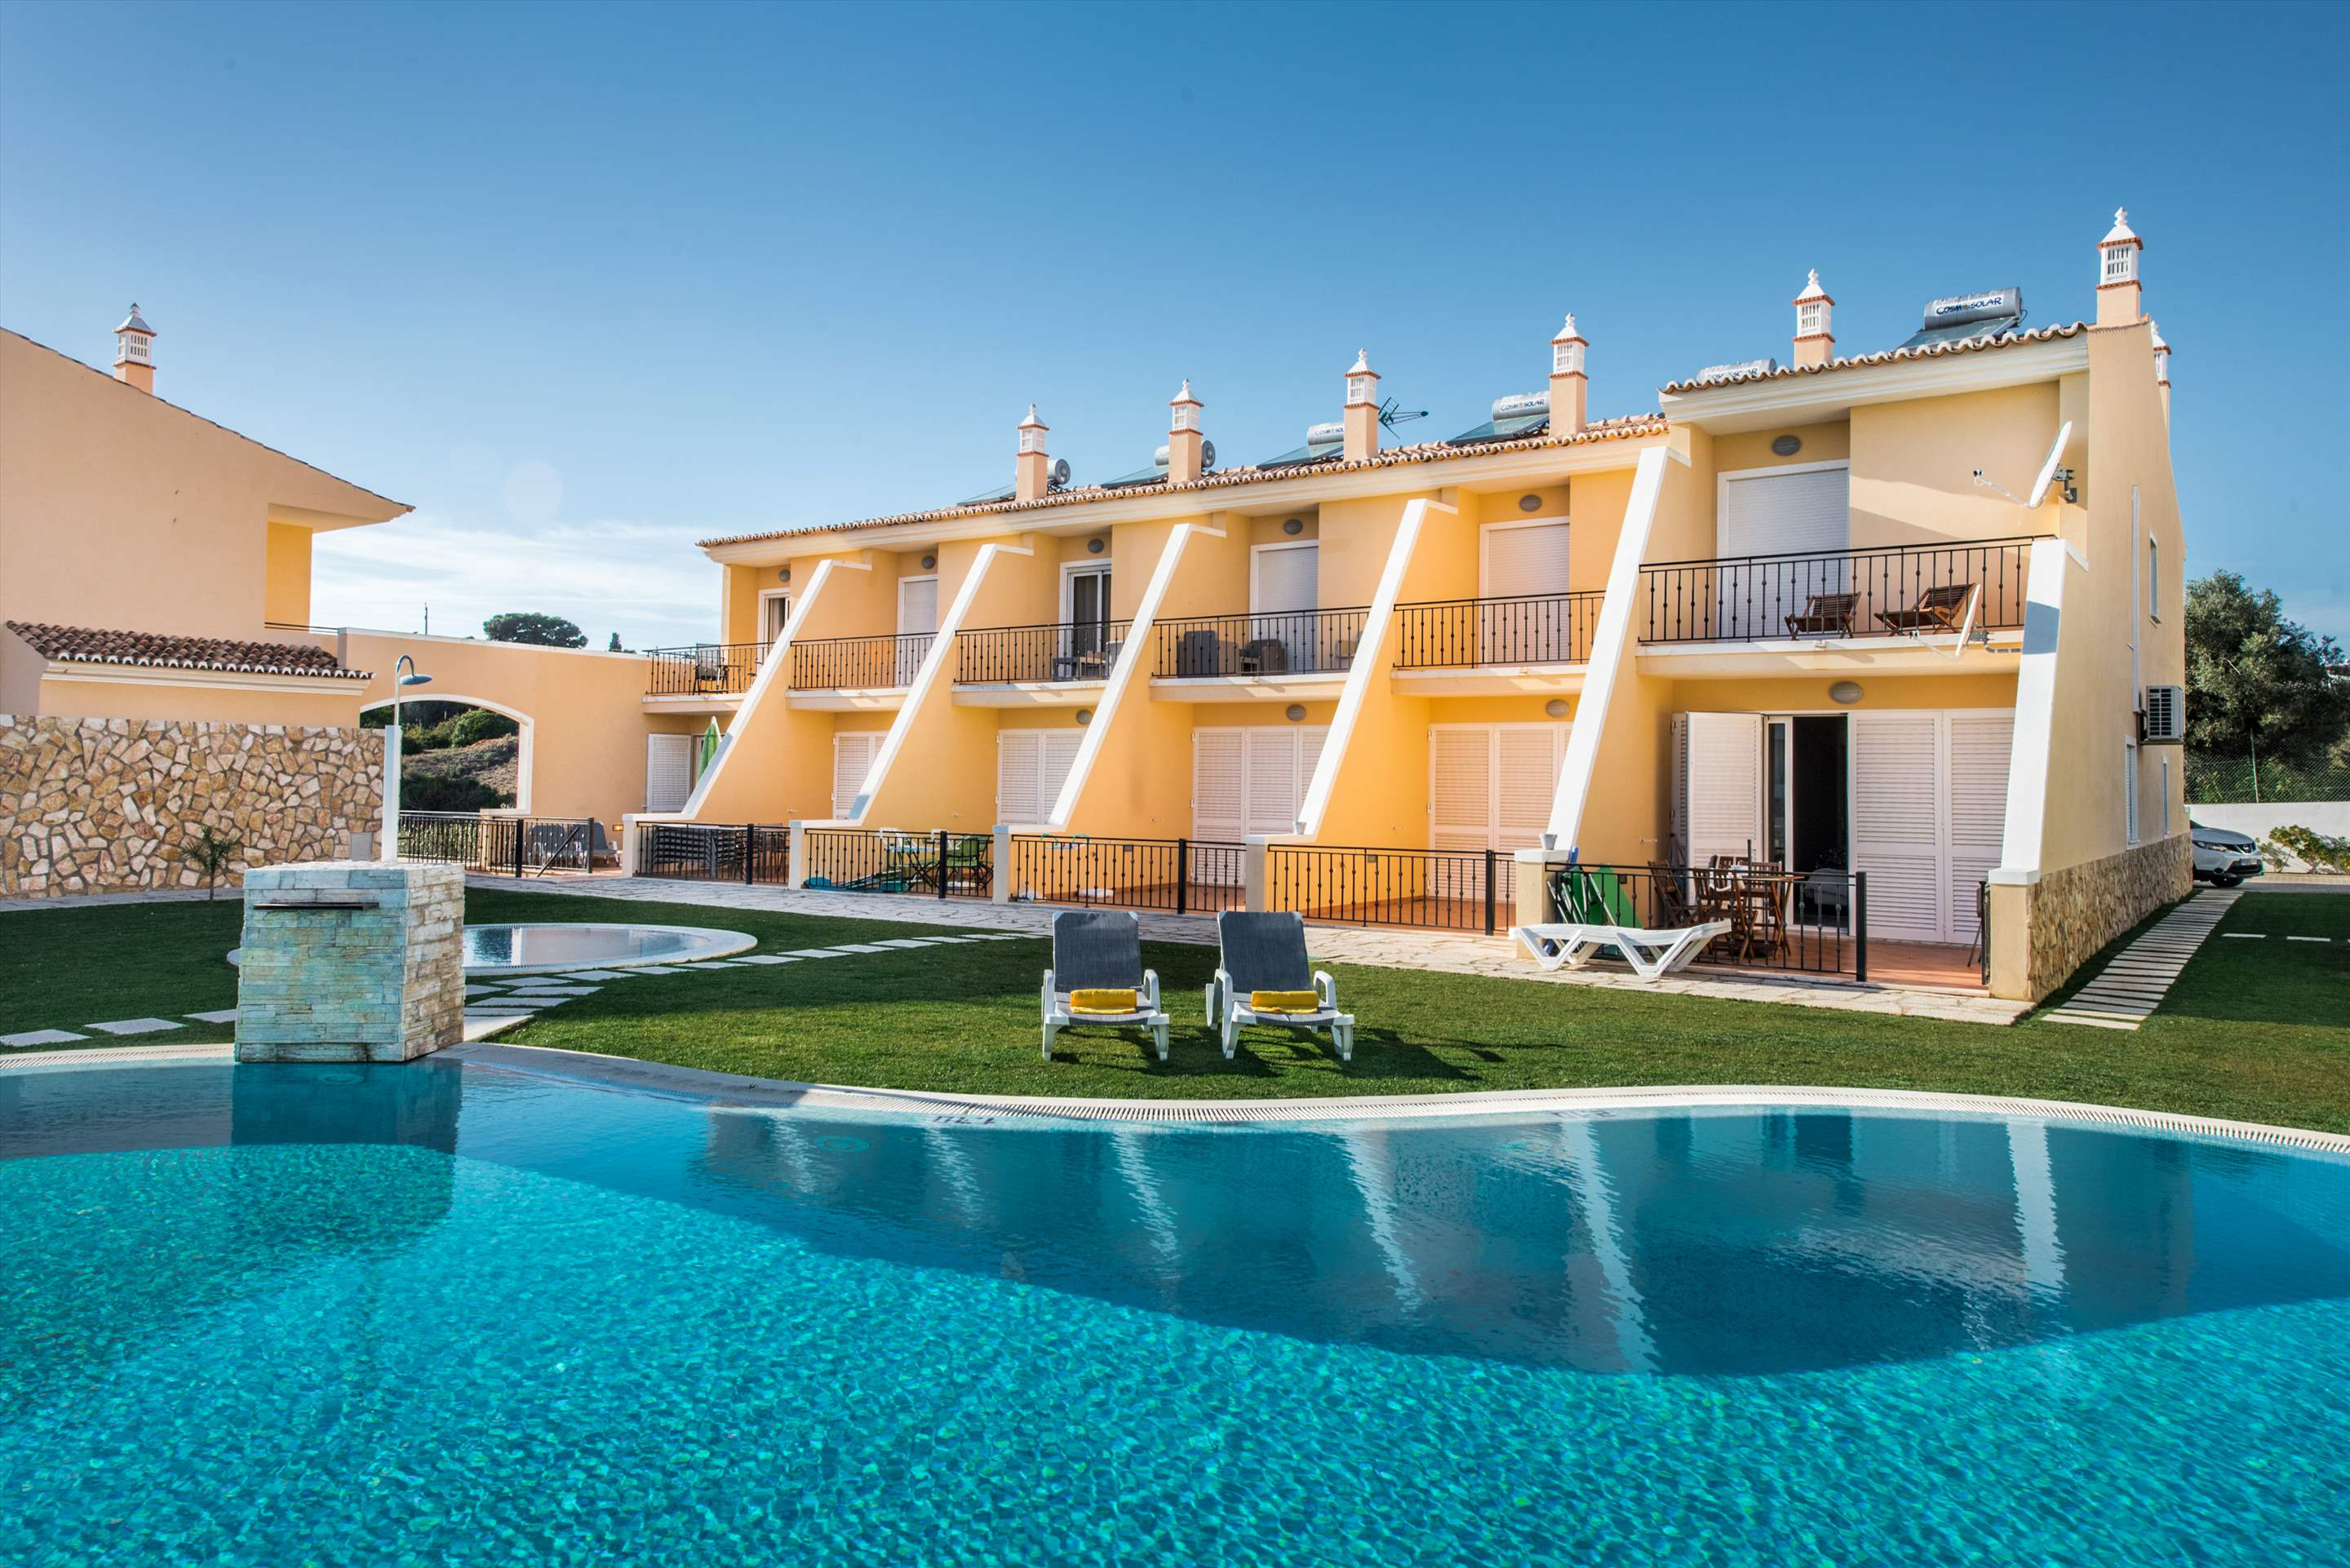 Townhouse Rosal 'D', 2 bedroom villa in Gale, Vale da Parra and Guia, Algarve